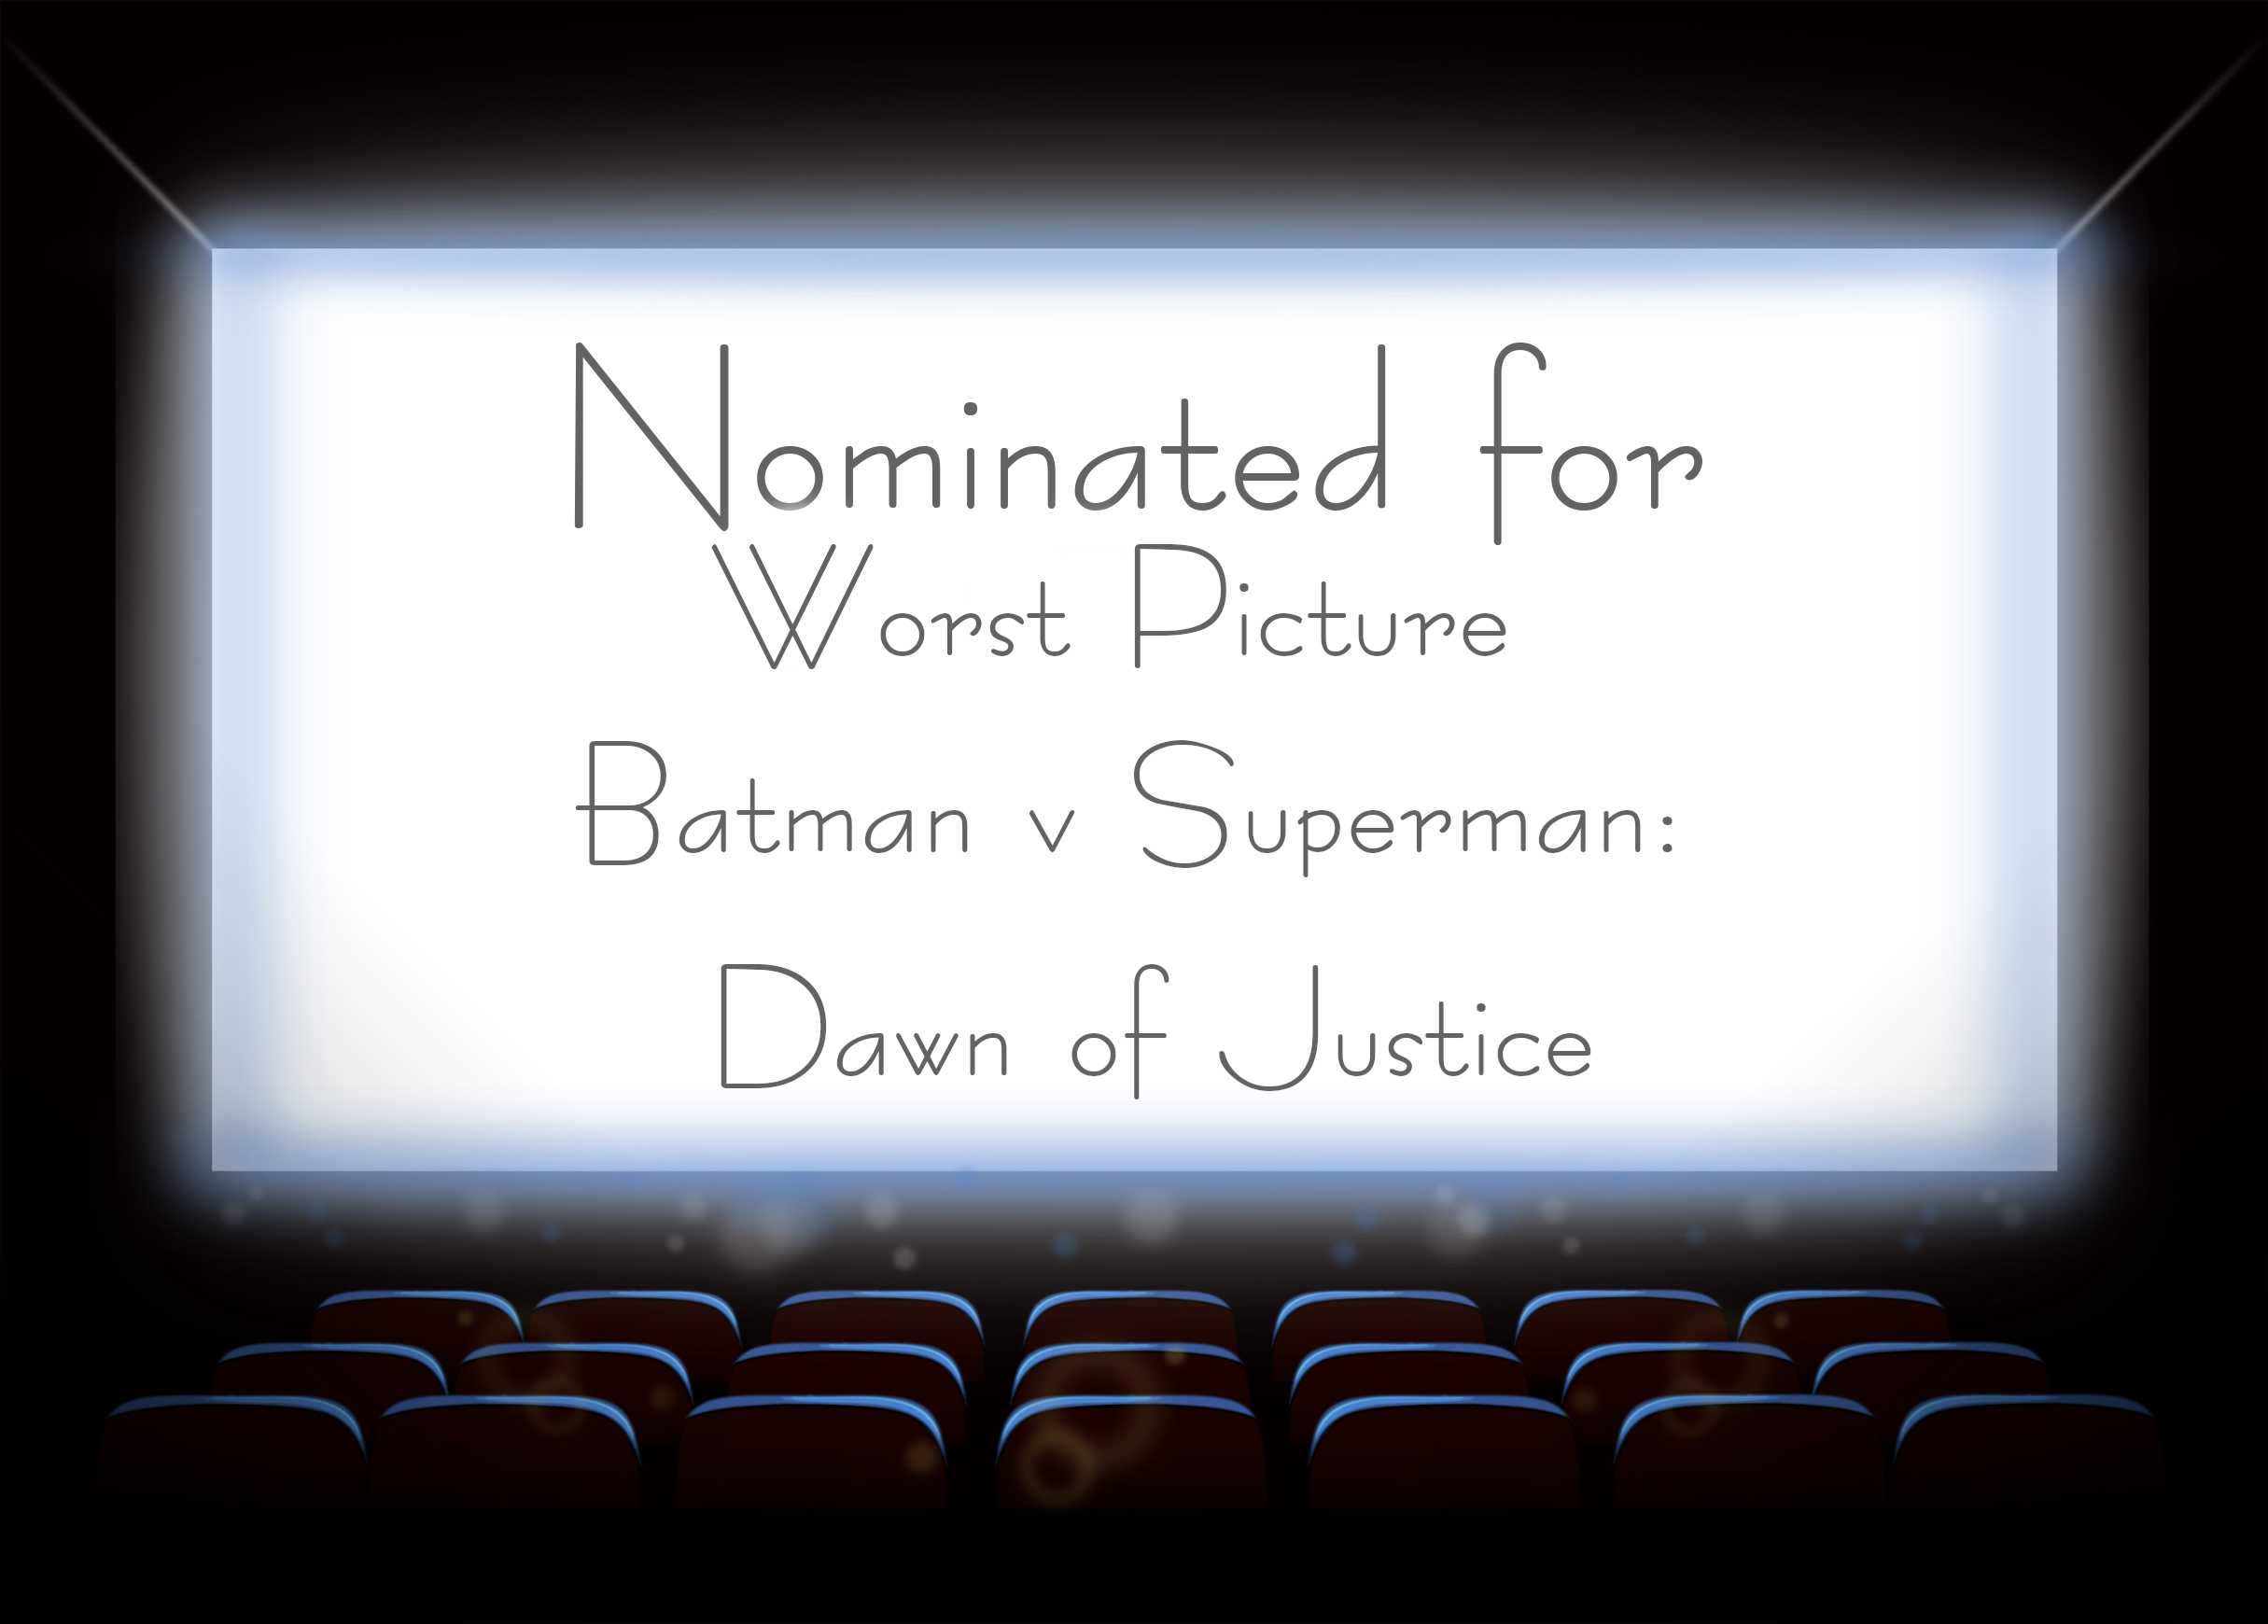 Batman v Superman hit theaters in March of 2016. Check out the trailer on Youtube.